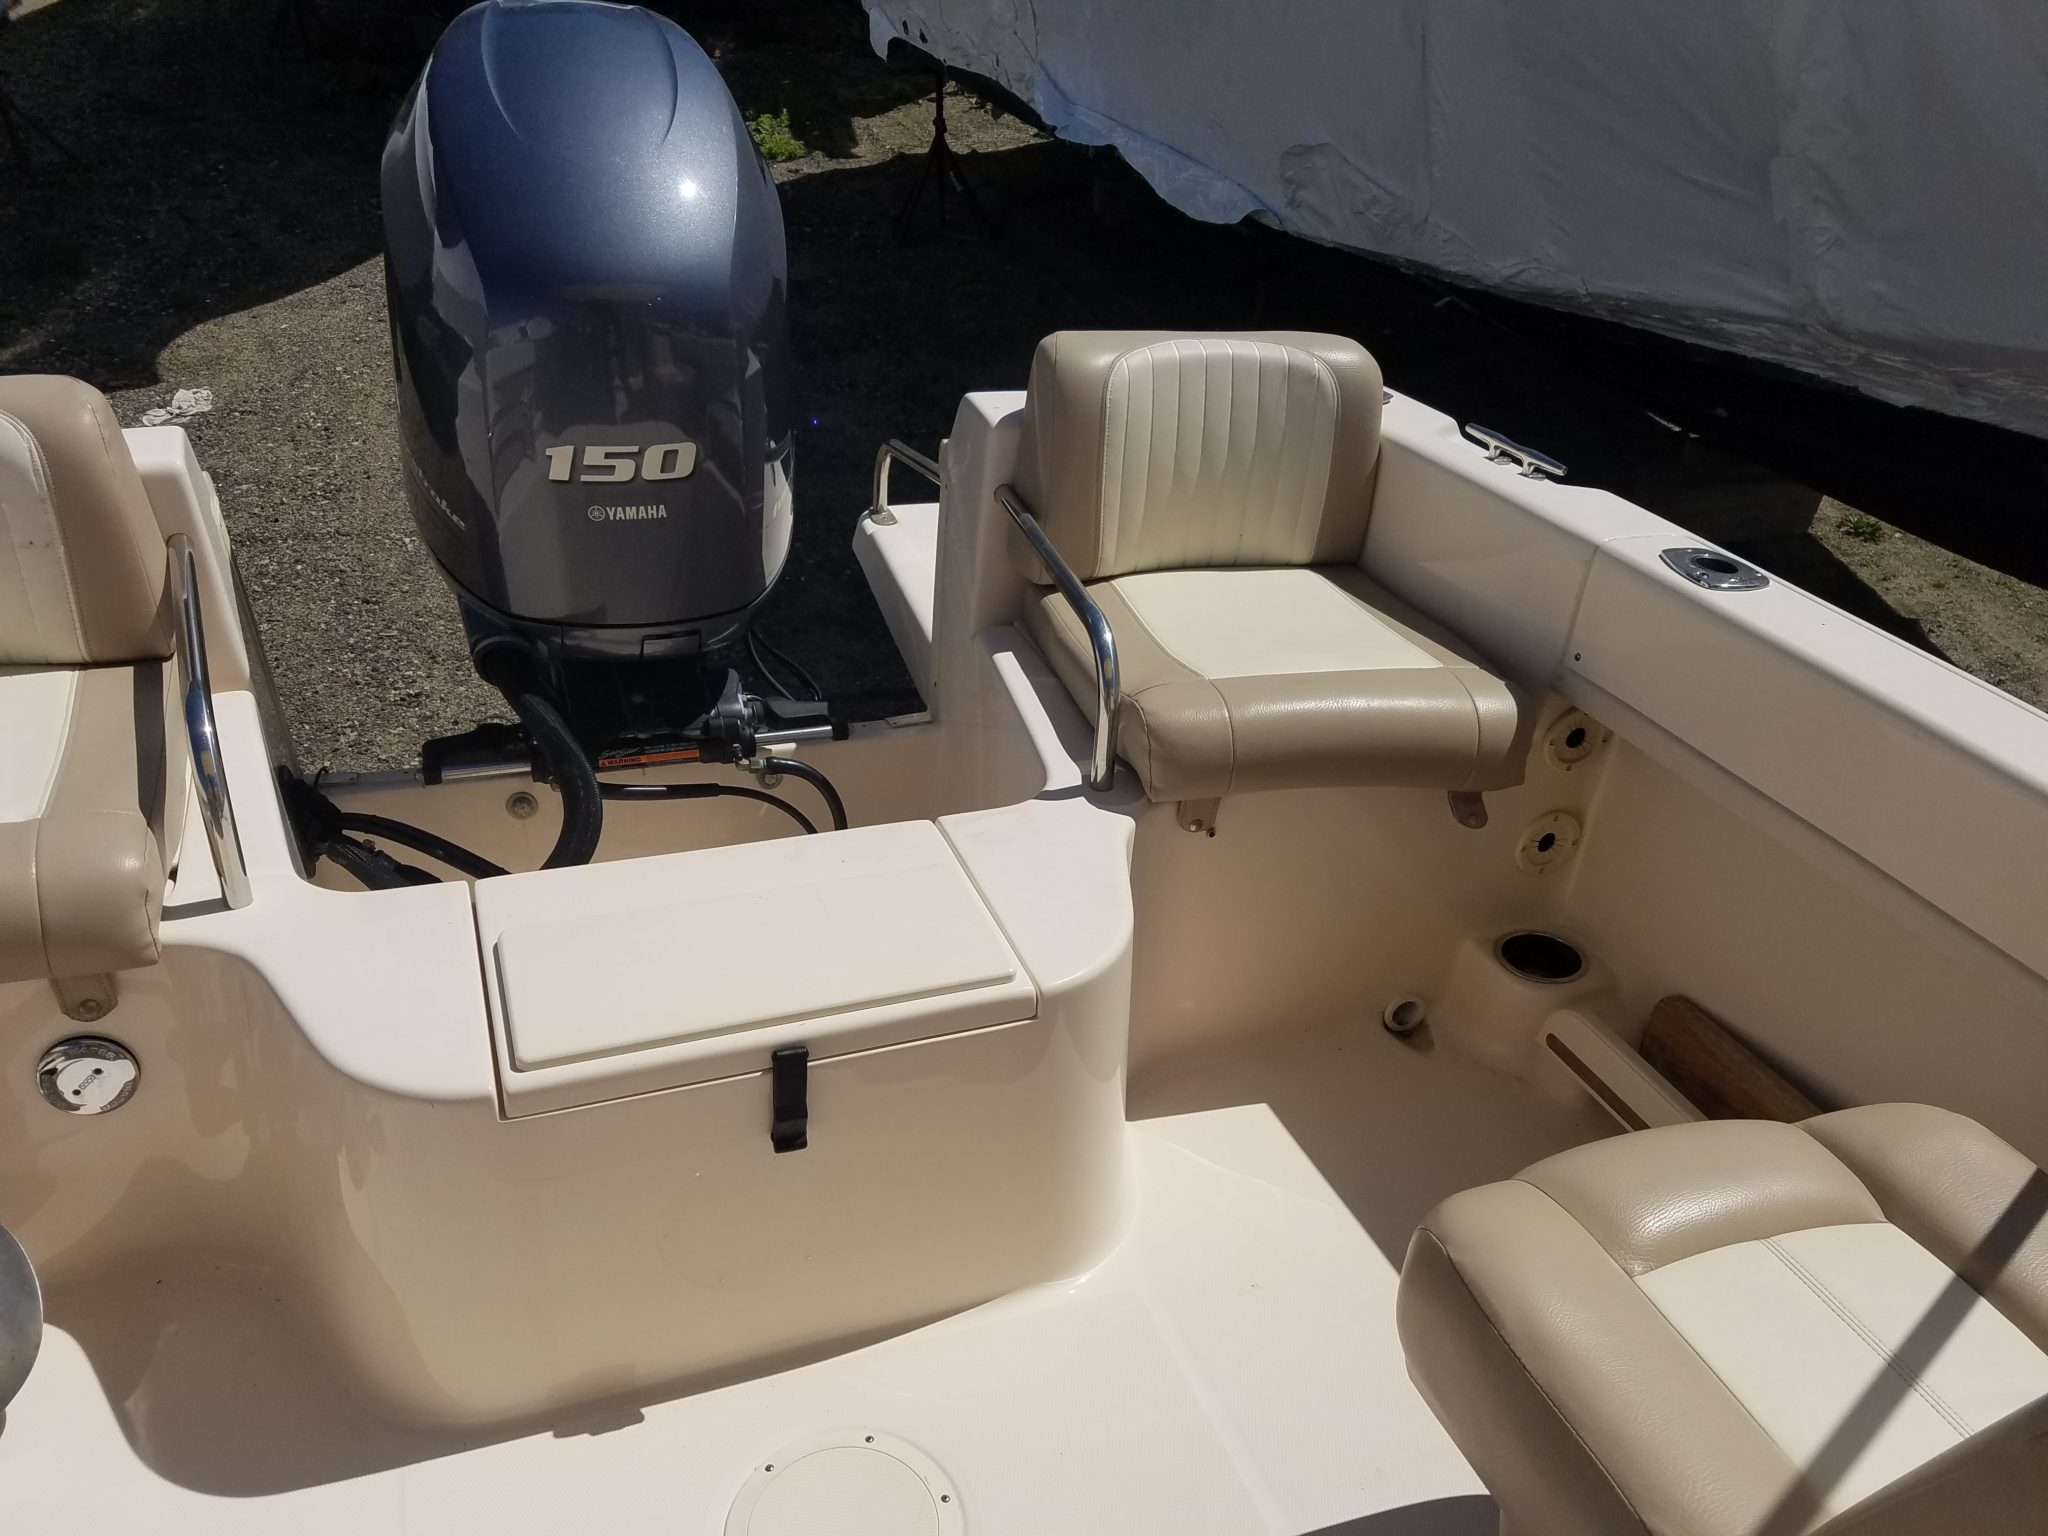 2013 Grady White 205 Freedom $45,900 *SOLD* - Outermost